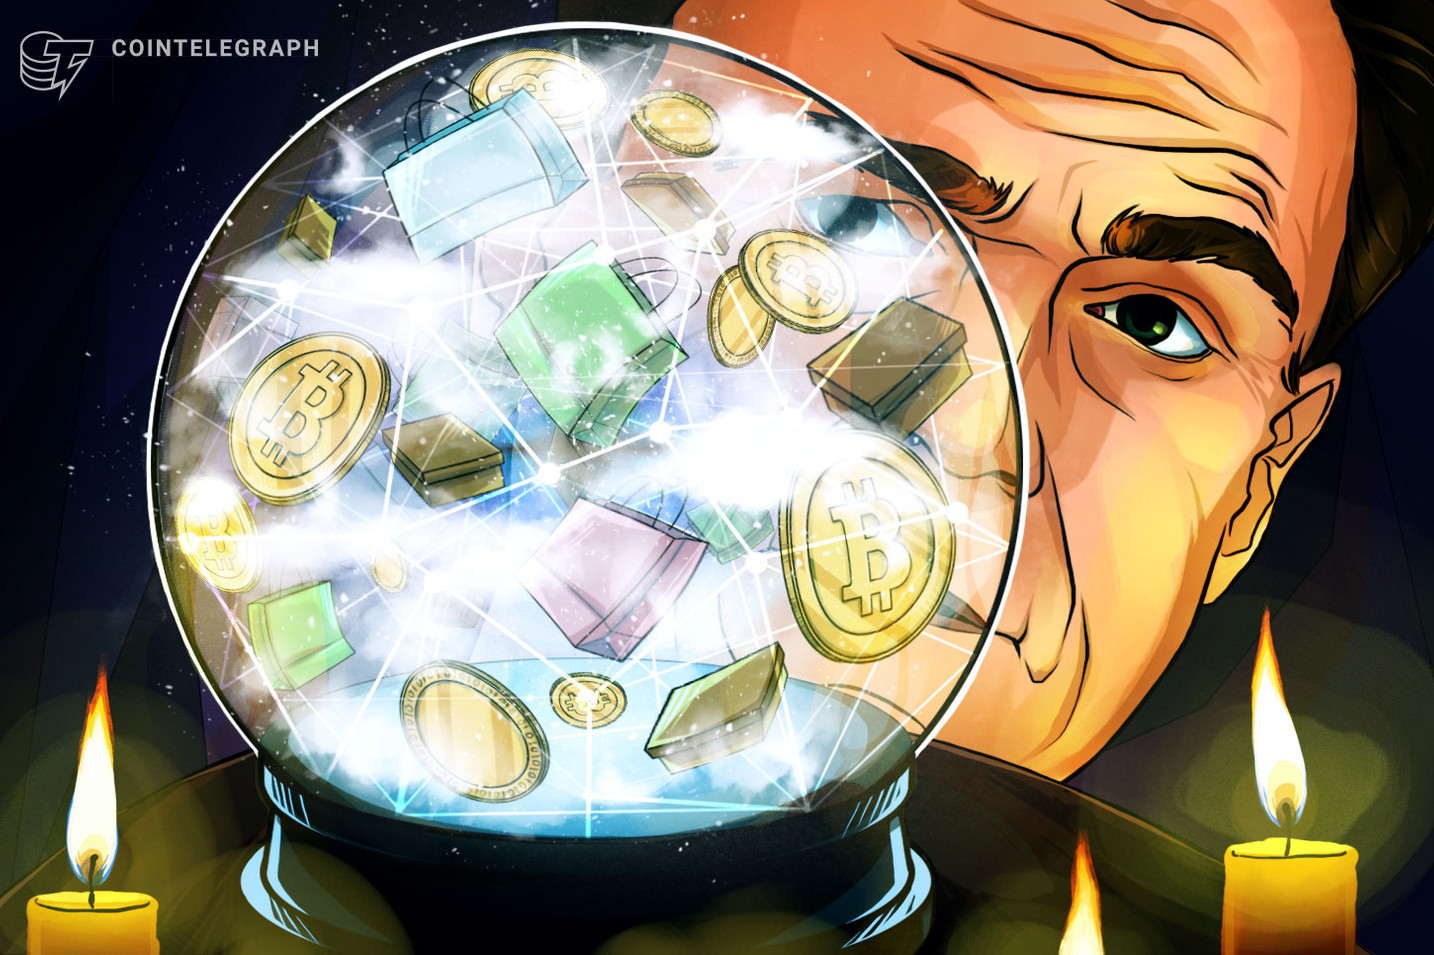 Bitcoin to Be Worth 'Great Deal More' in Three Years, Circle Co-Founder Says